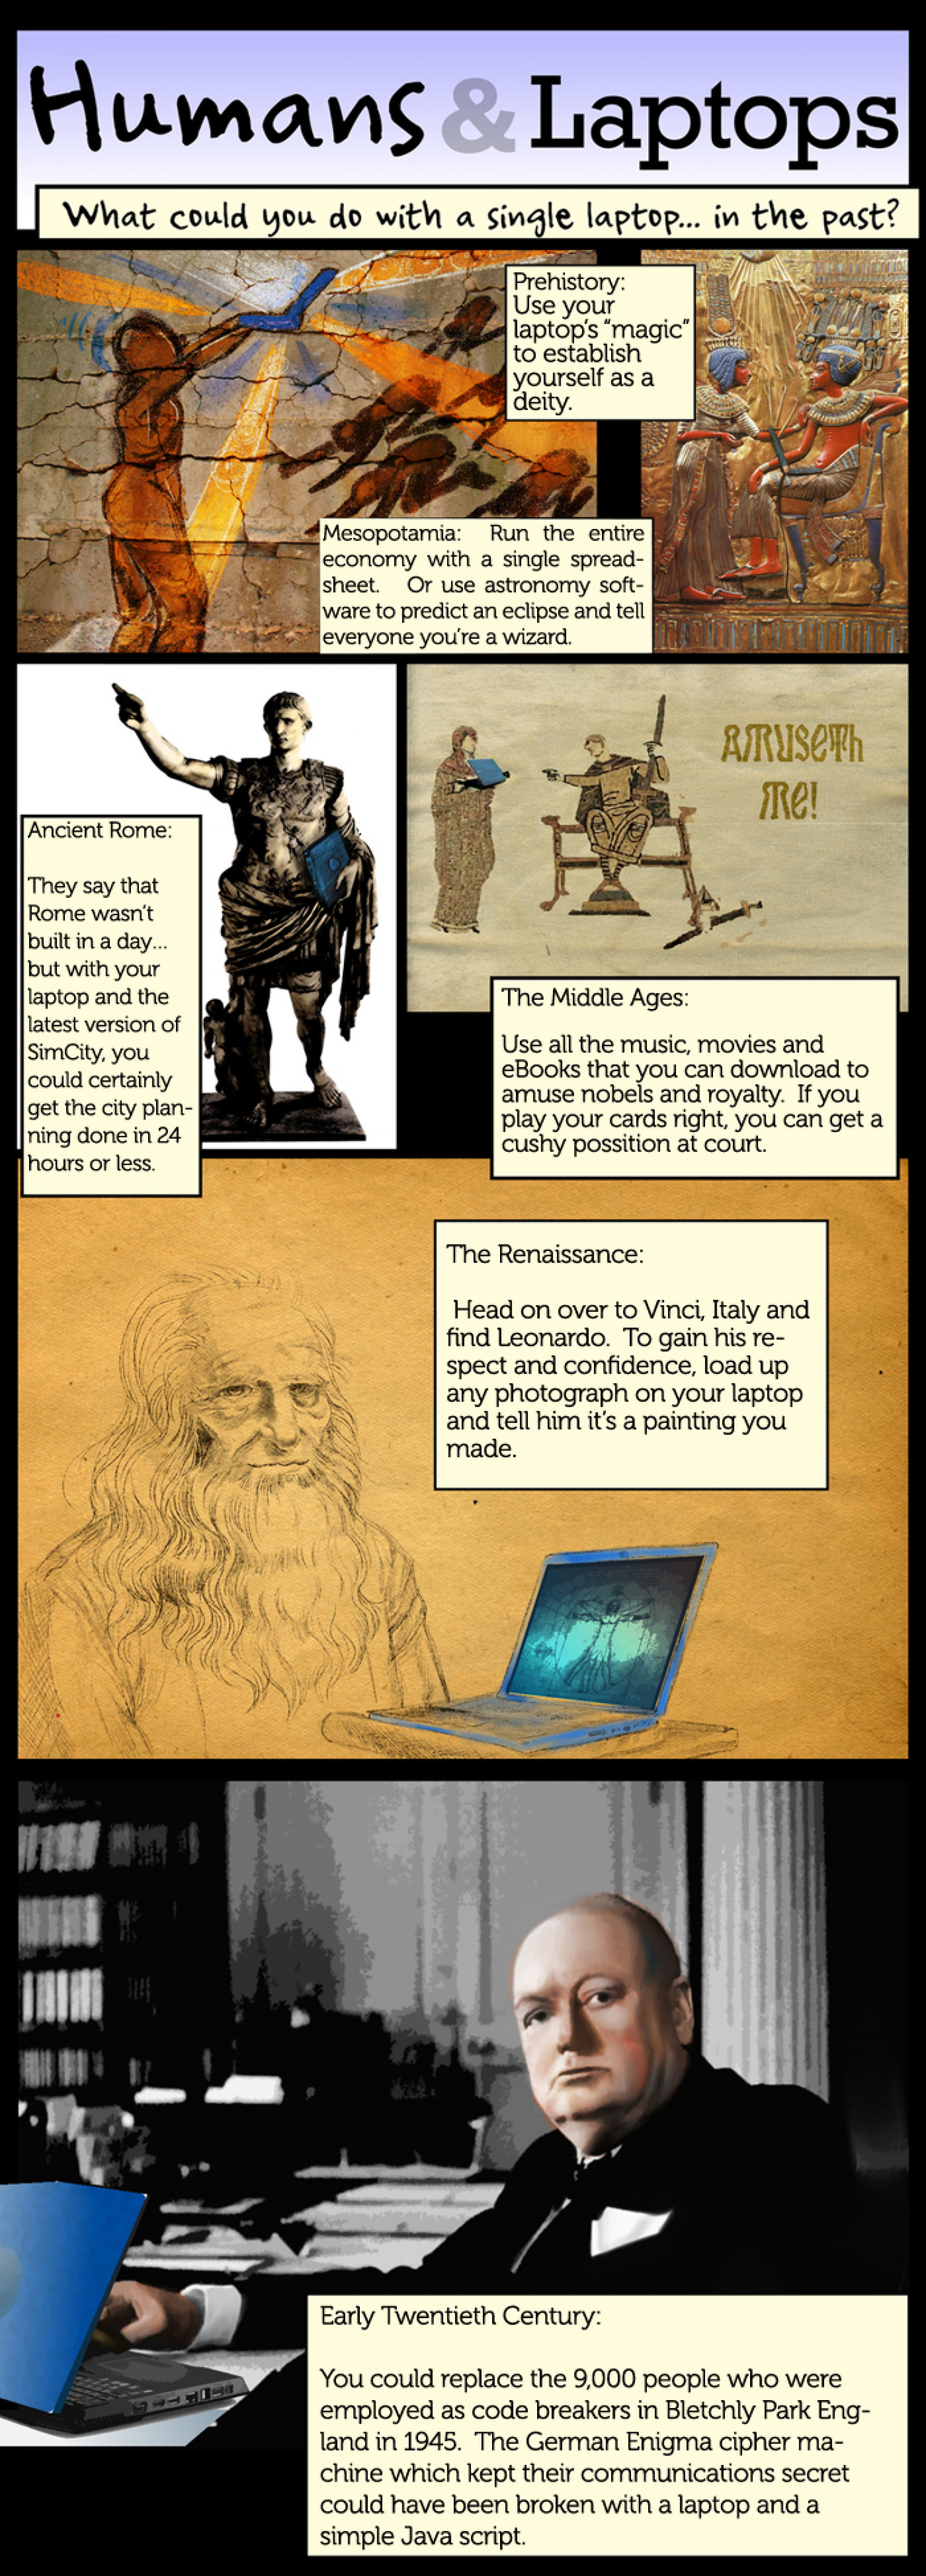 Humans and laptops: What could you do with a single laptop in the past? Infographic